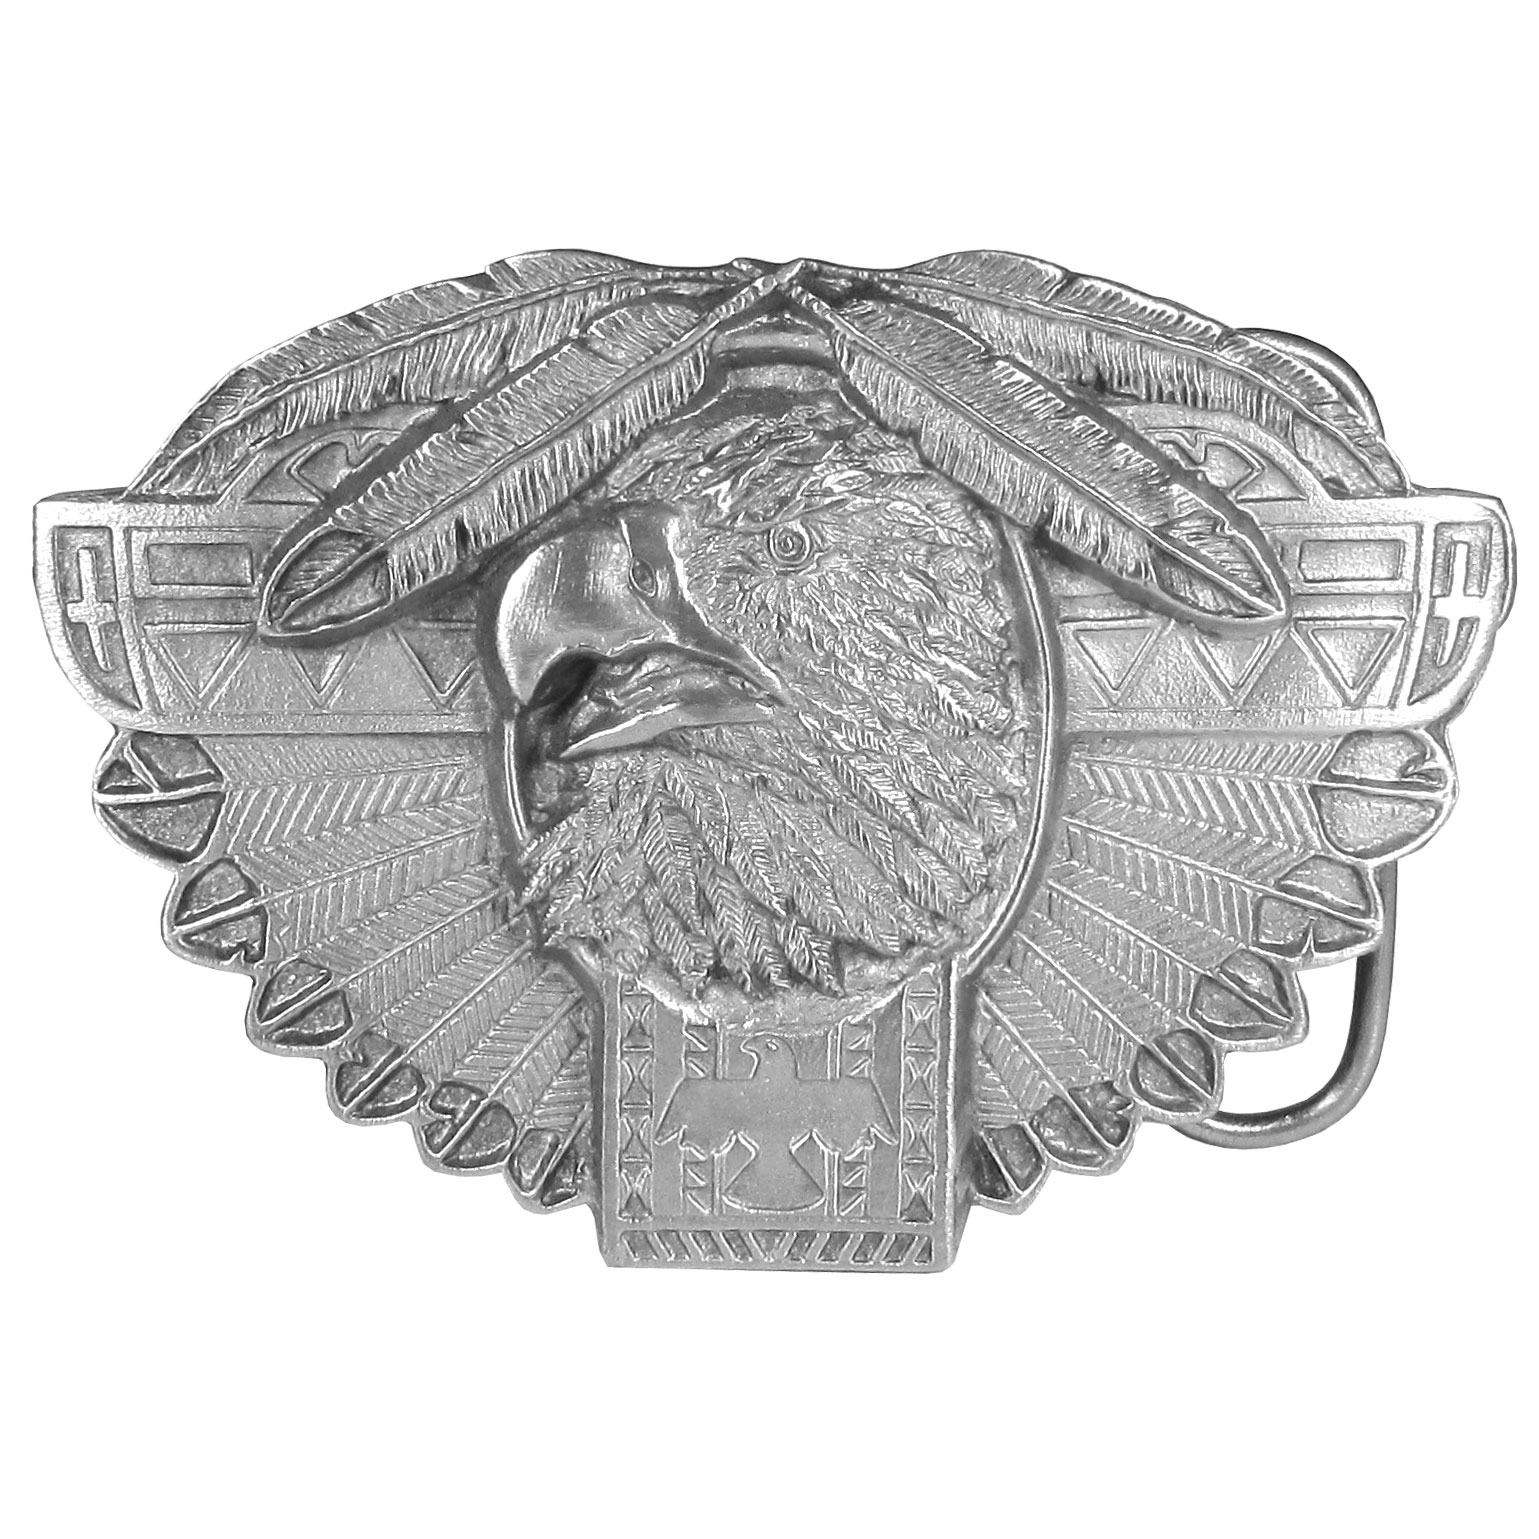 Thunderbird Totem Antiqued Belt Buckle - This finely sculpted thunderbird totem belt buckle features a thunderbird head, a totem pole and feathers. Siskiyou's unique buckle designs often become collector's items and are unequaled with the best craftsmanship.